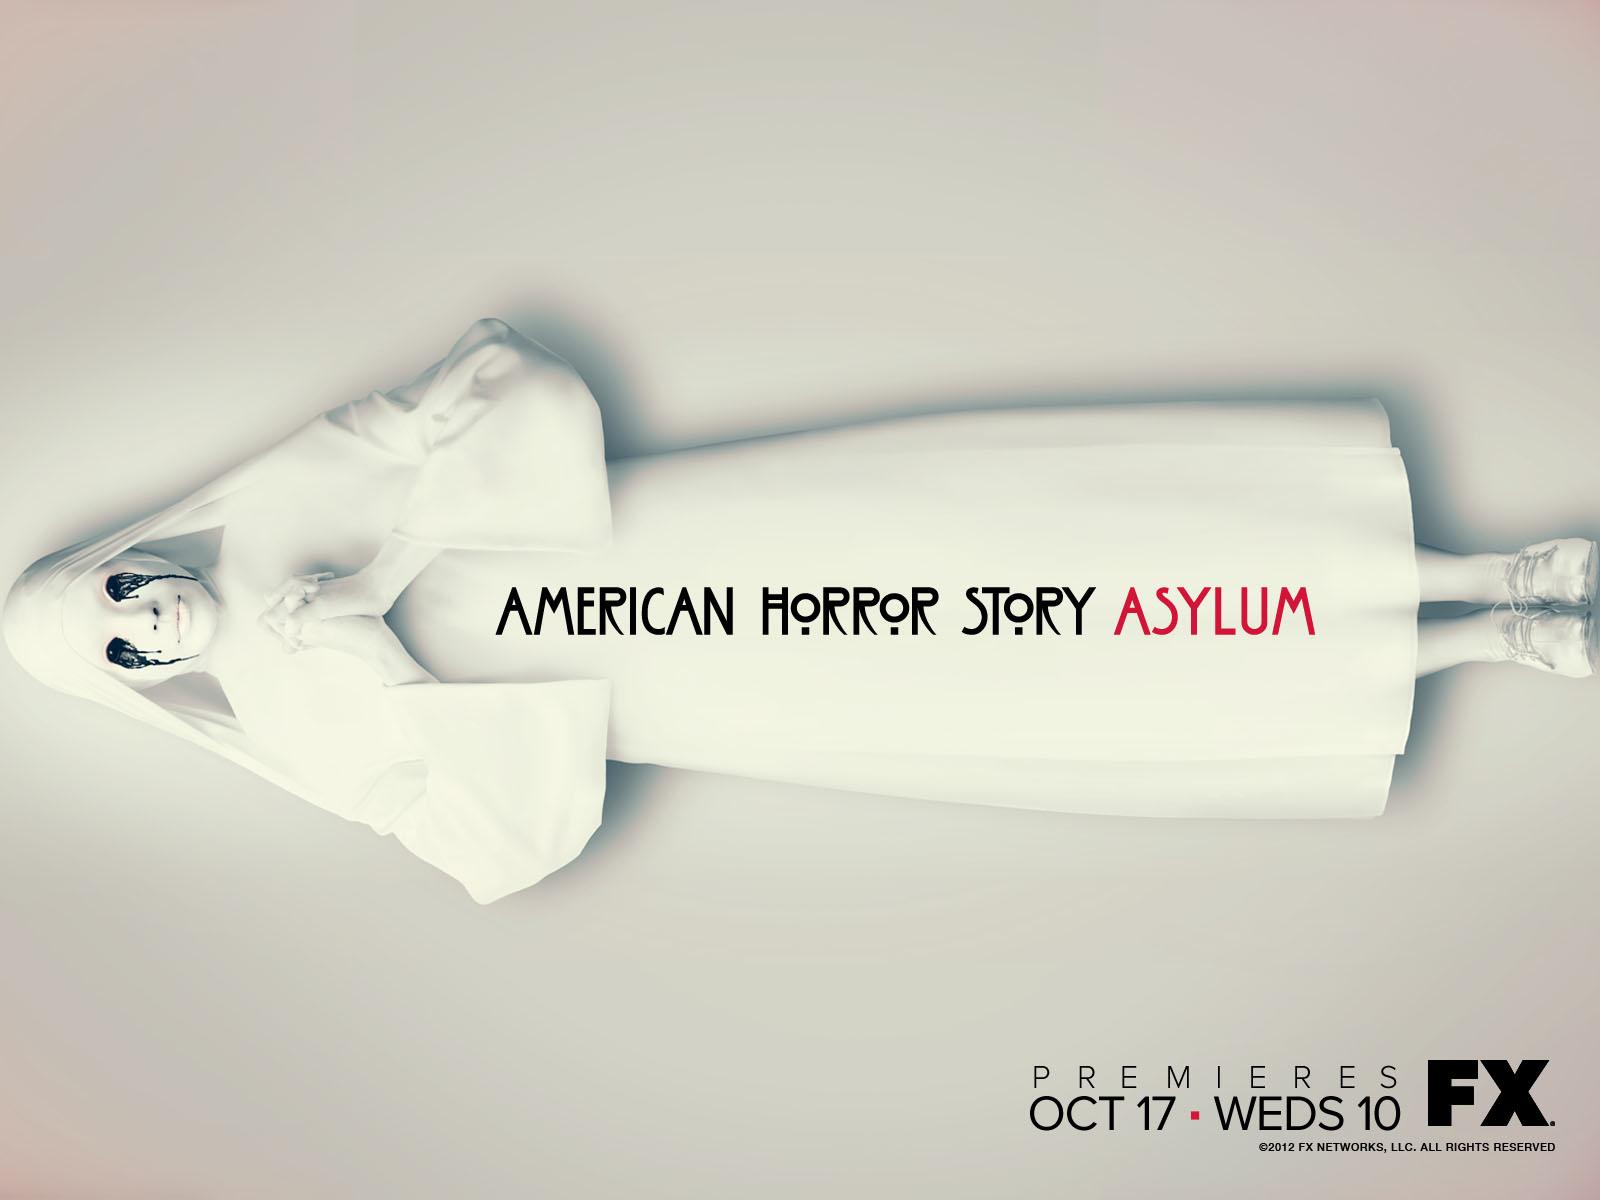 American Horror Story Asylum wallpapers HD quality